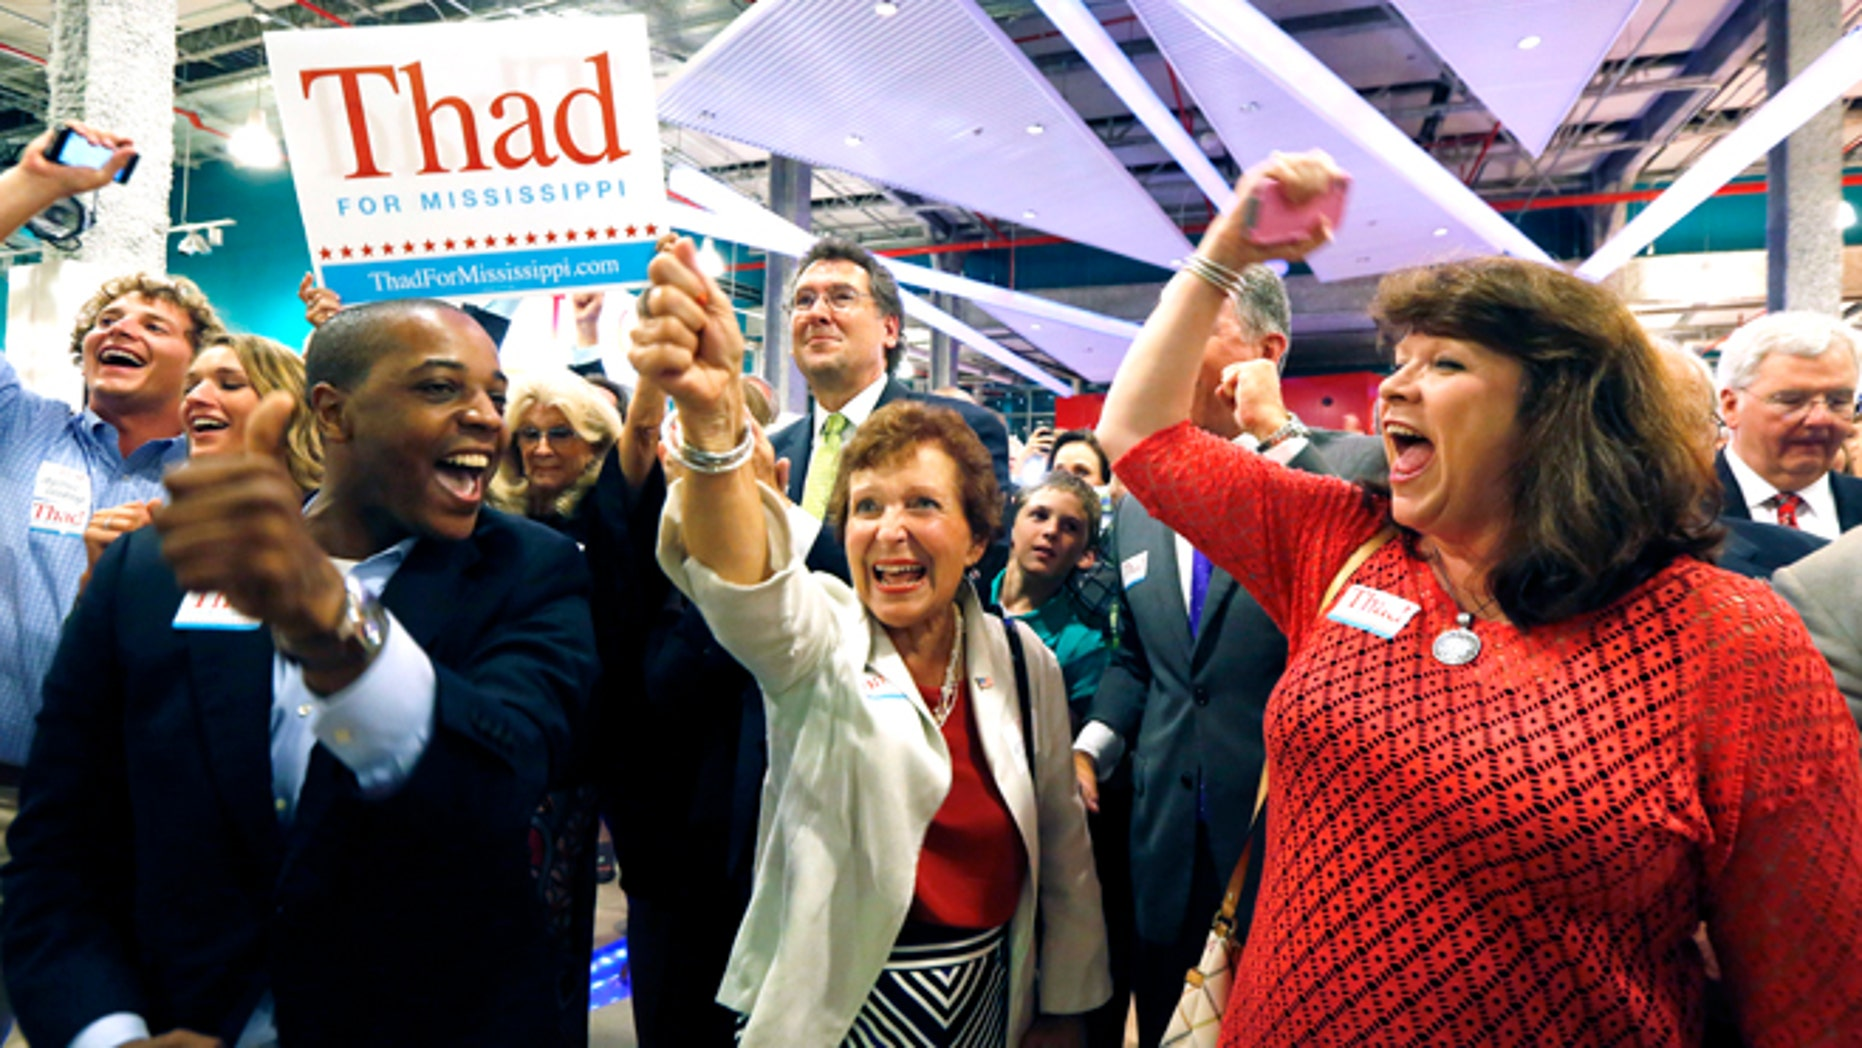 June 24, 2014: Supporters of Sen. Thad Cochran, R-Miss., break into cheer as he is declared the winner in his primary runoff for the GOP nomination for U.S. Senate at his victory party at the Mississippi Children's Museum in Jackson, Miss.